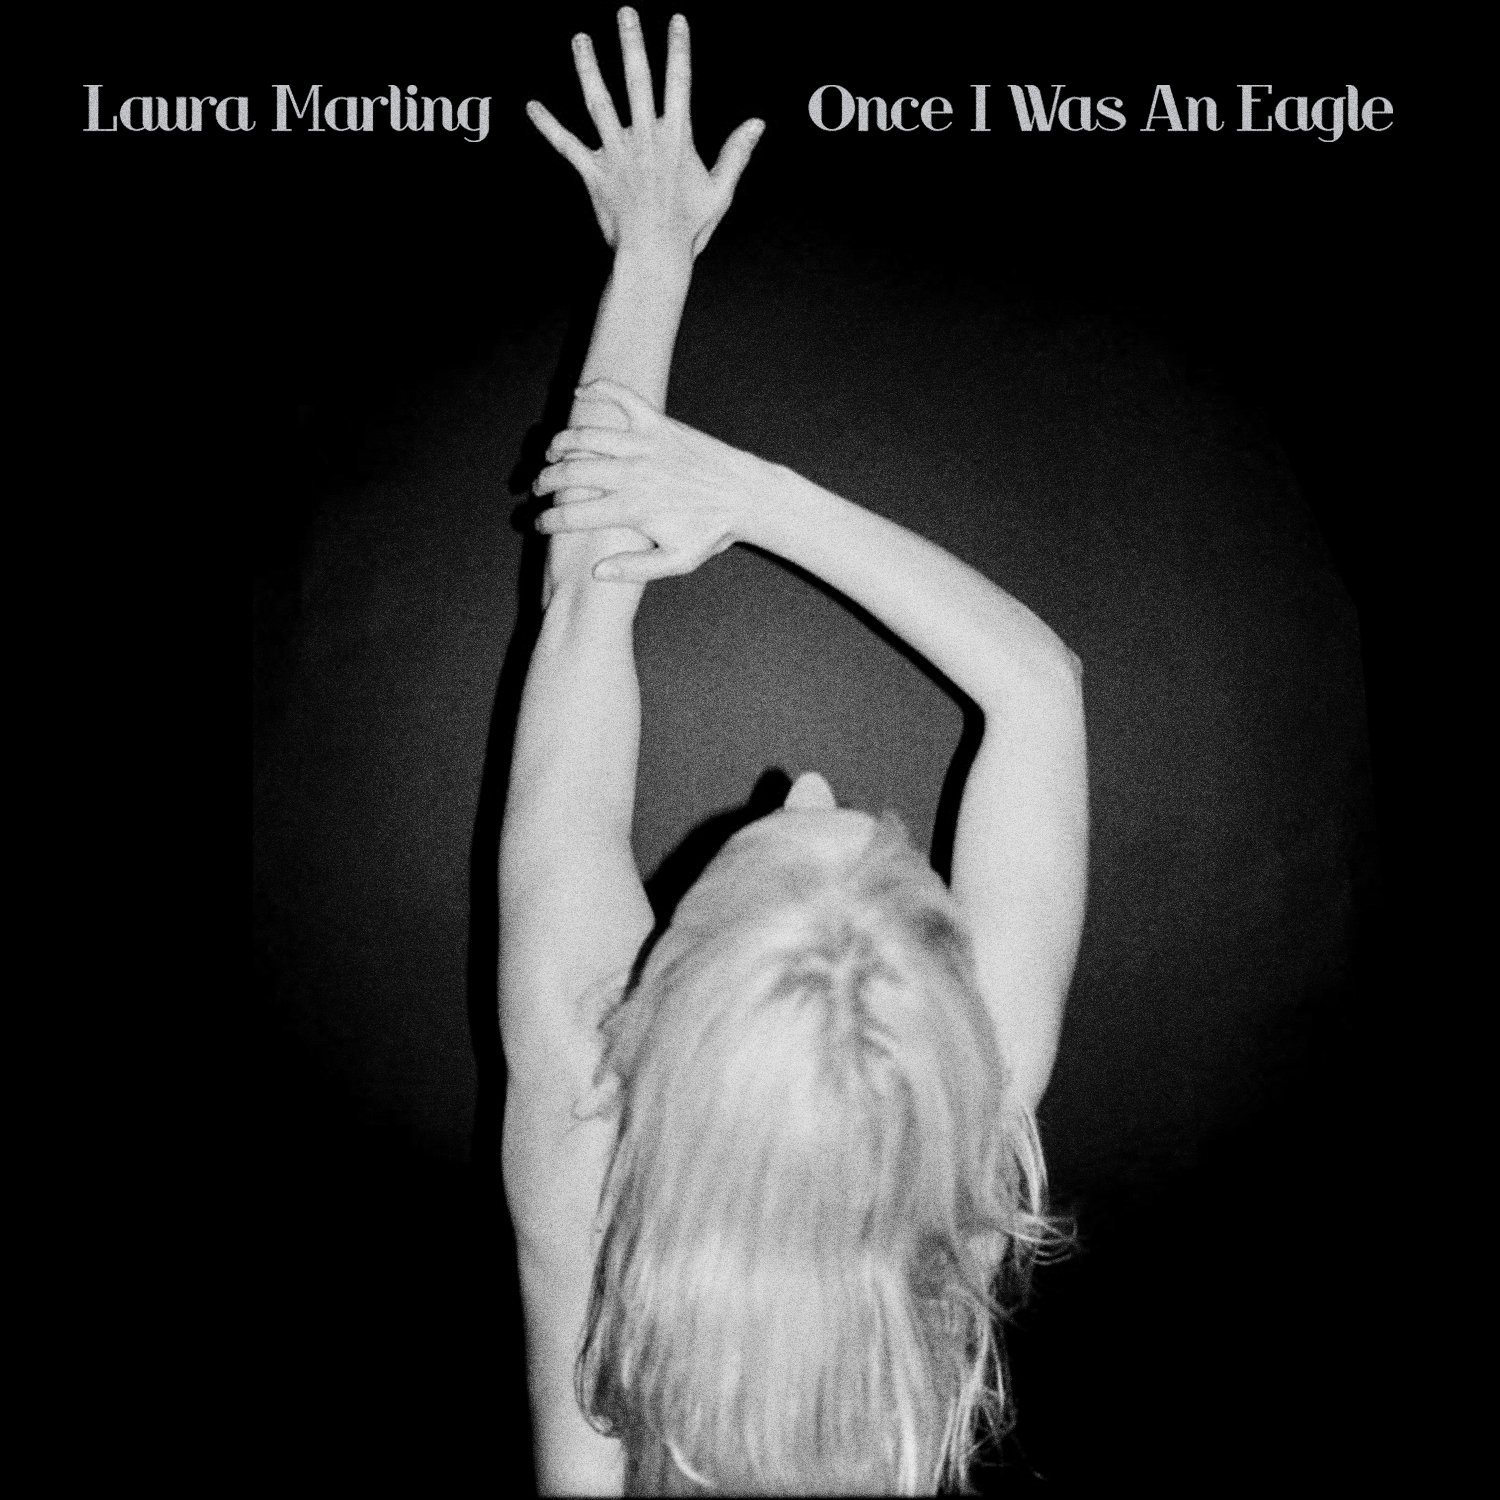 marling laura - once i was an eagle 2013